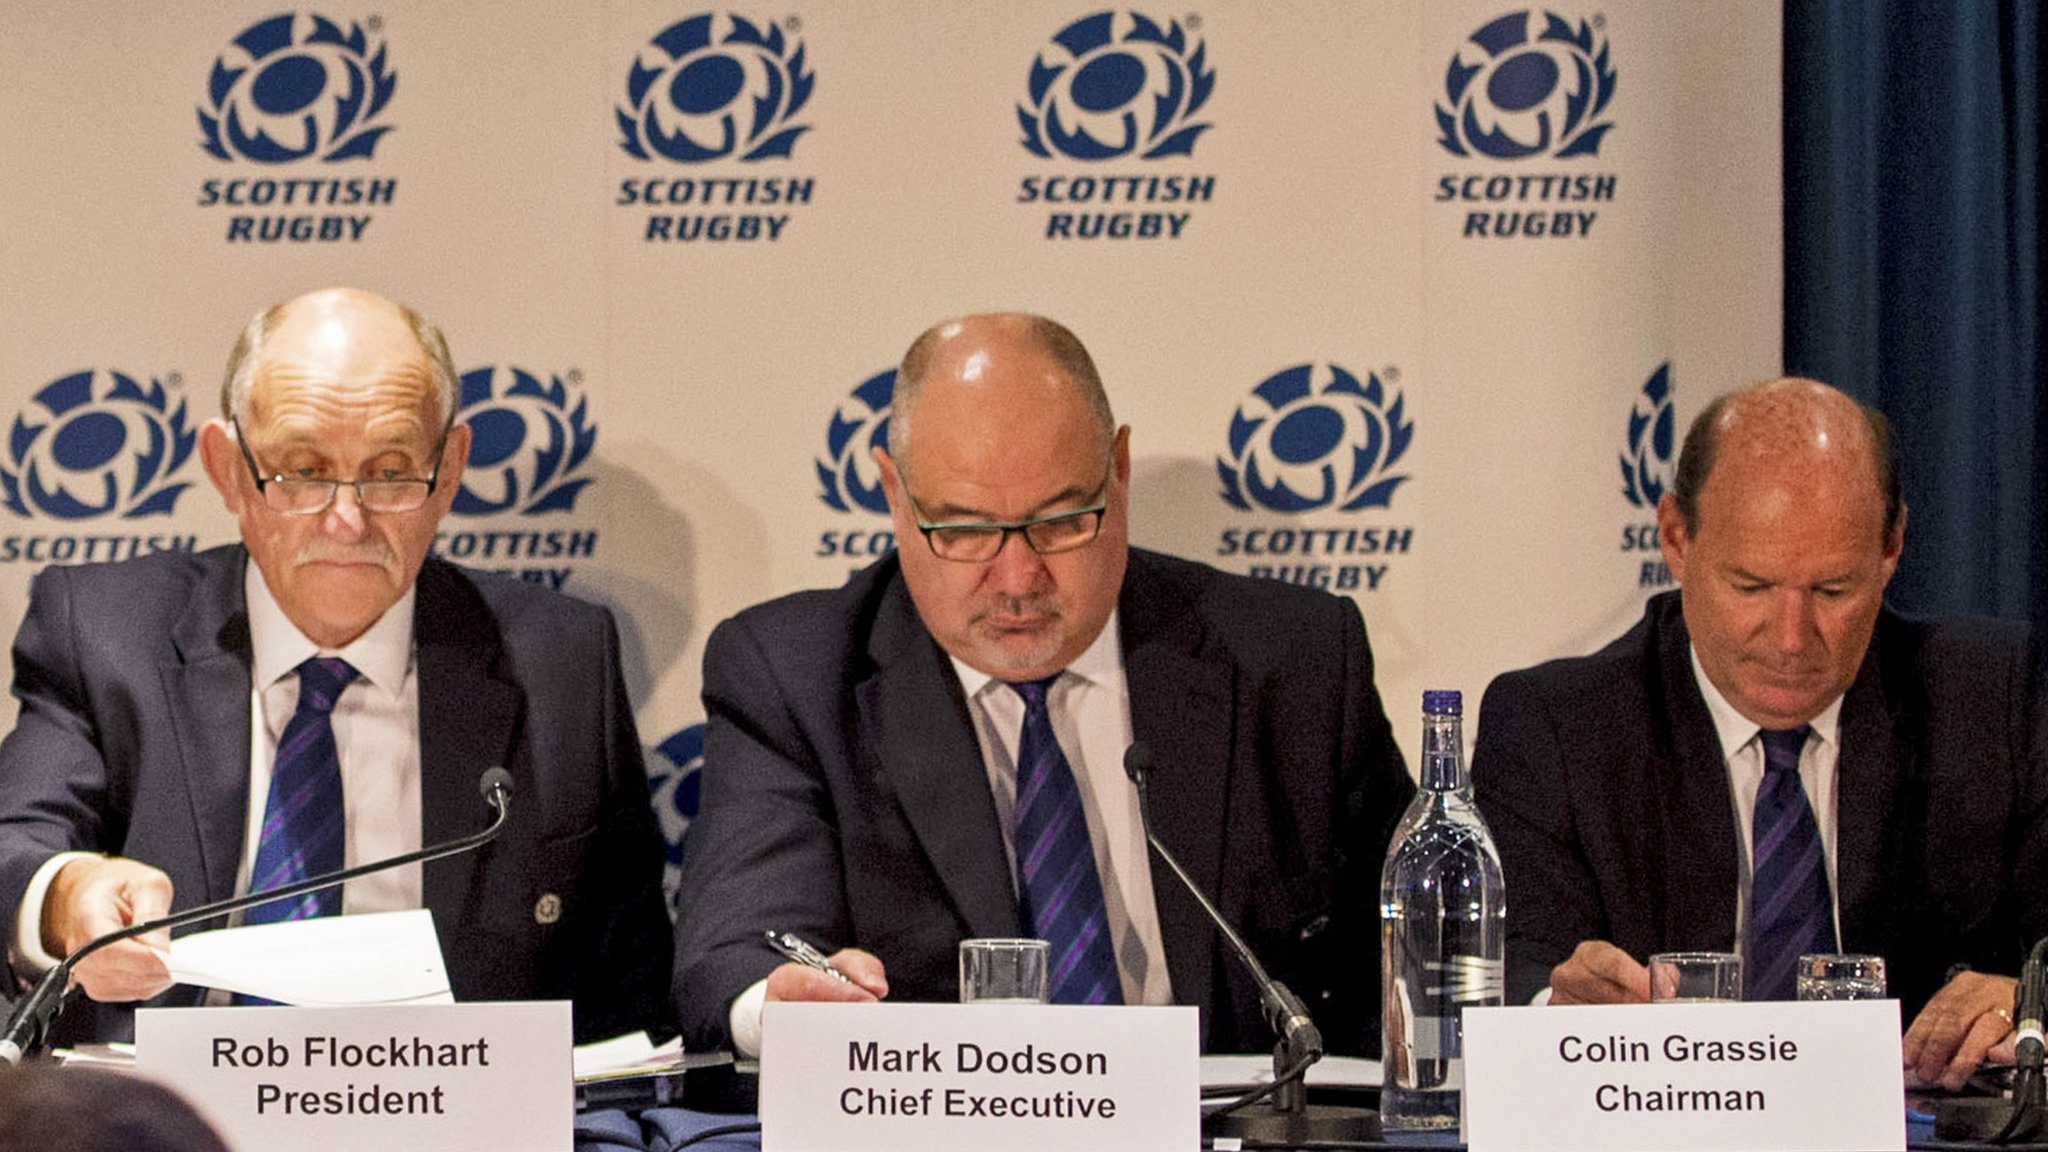 We do not recognise claims of toxic culture - Scottish Rugby